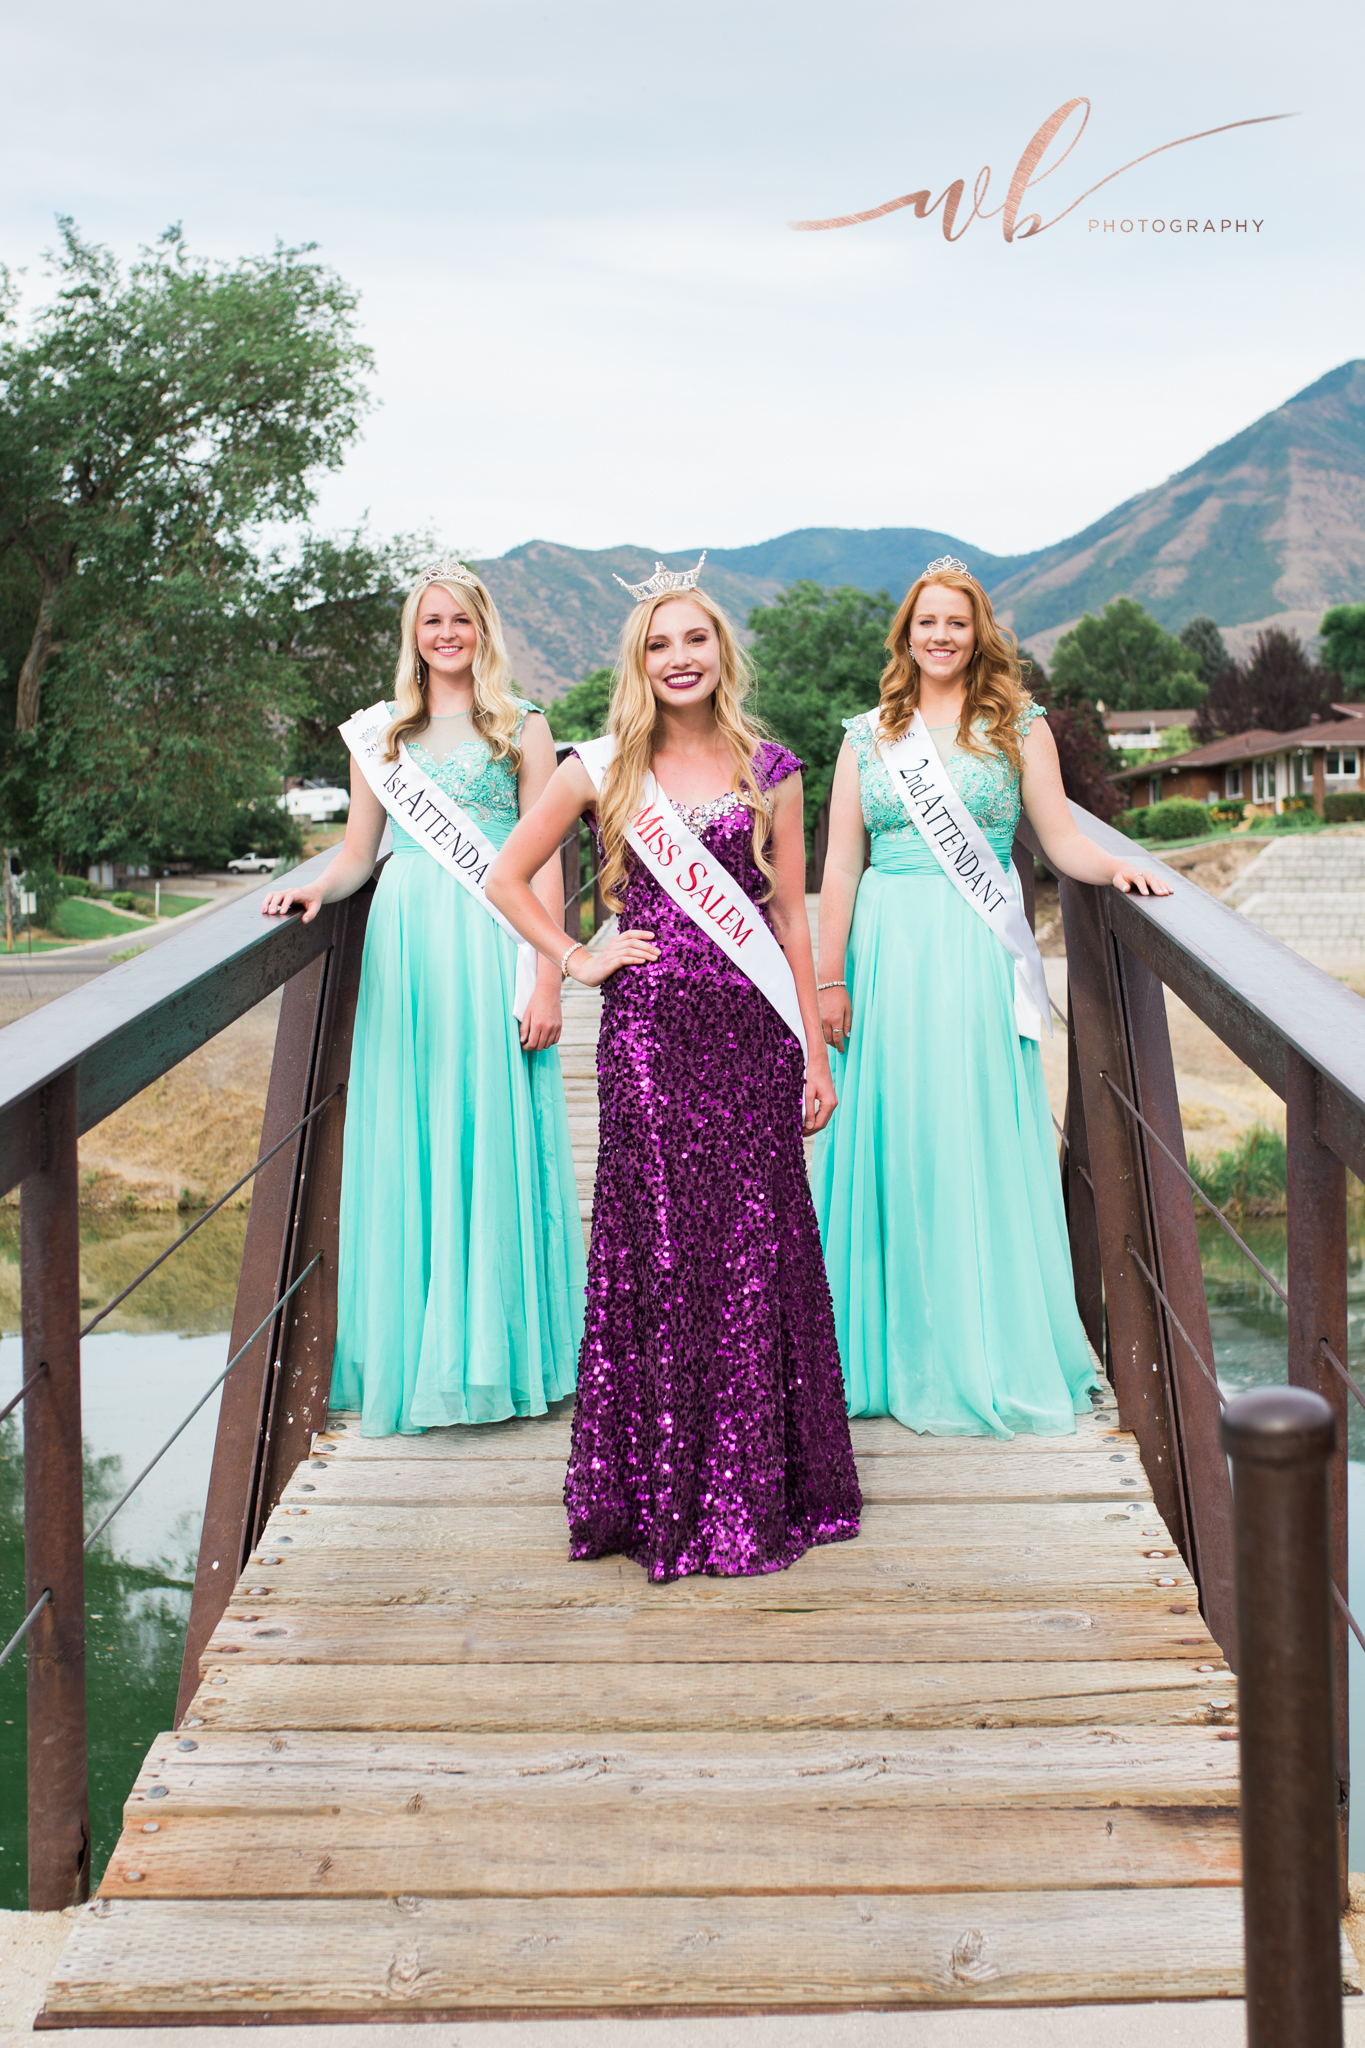 miss-salem-royalty-whitney-bufton-photography-5.jpg